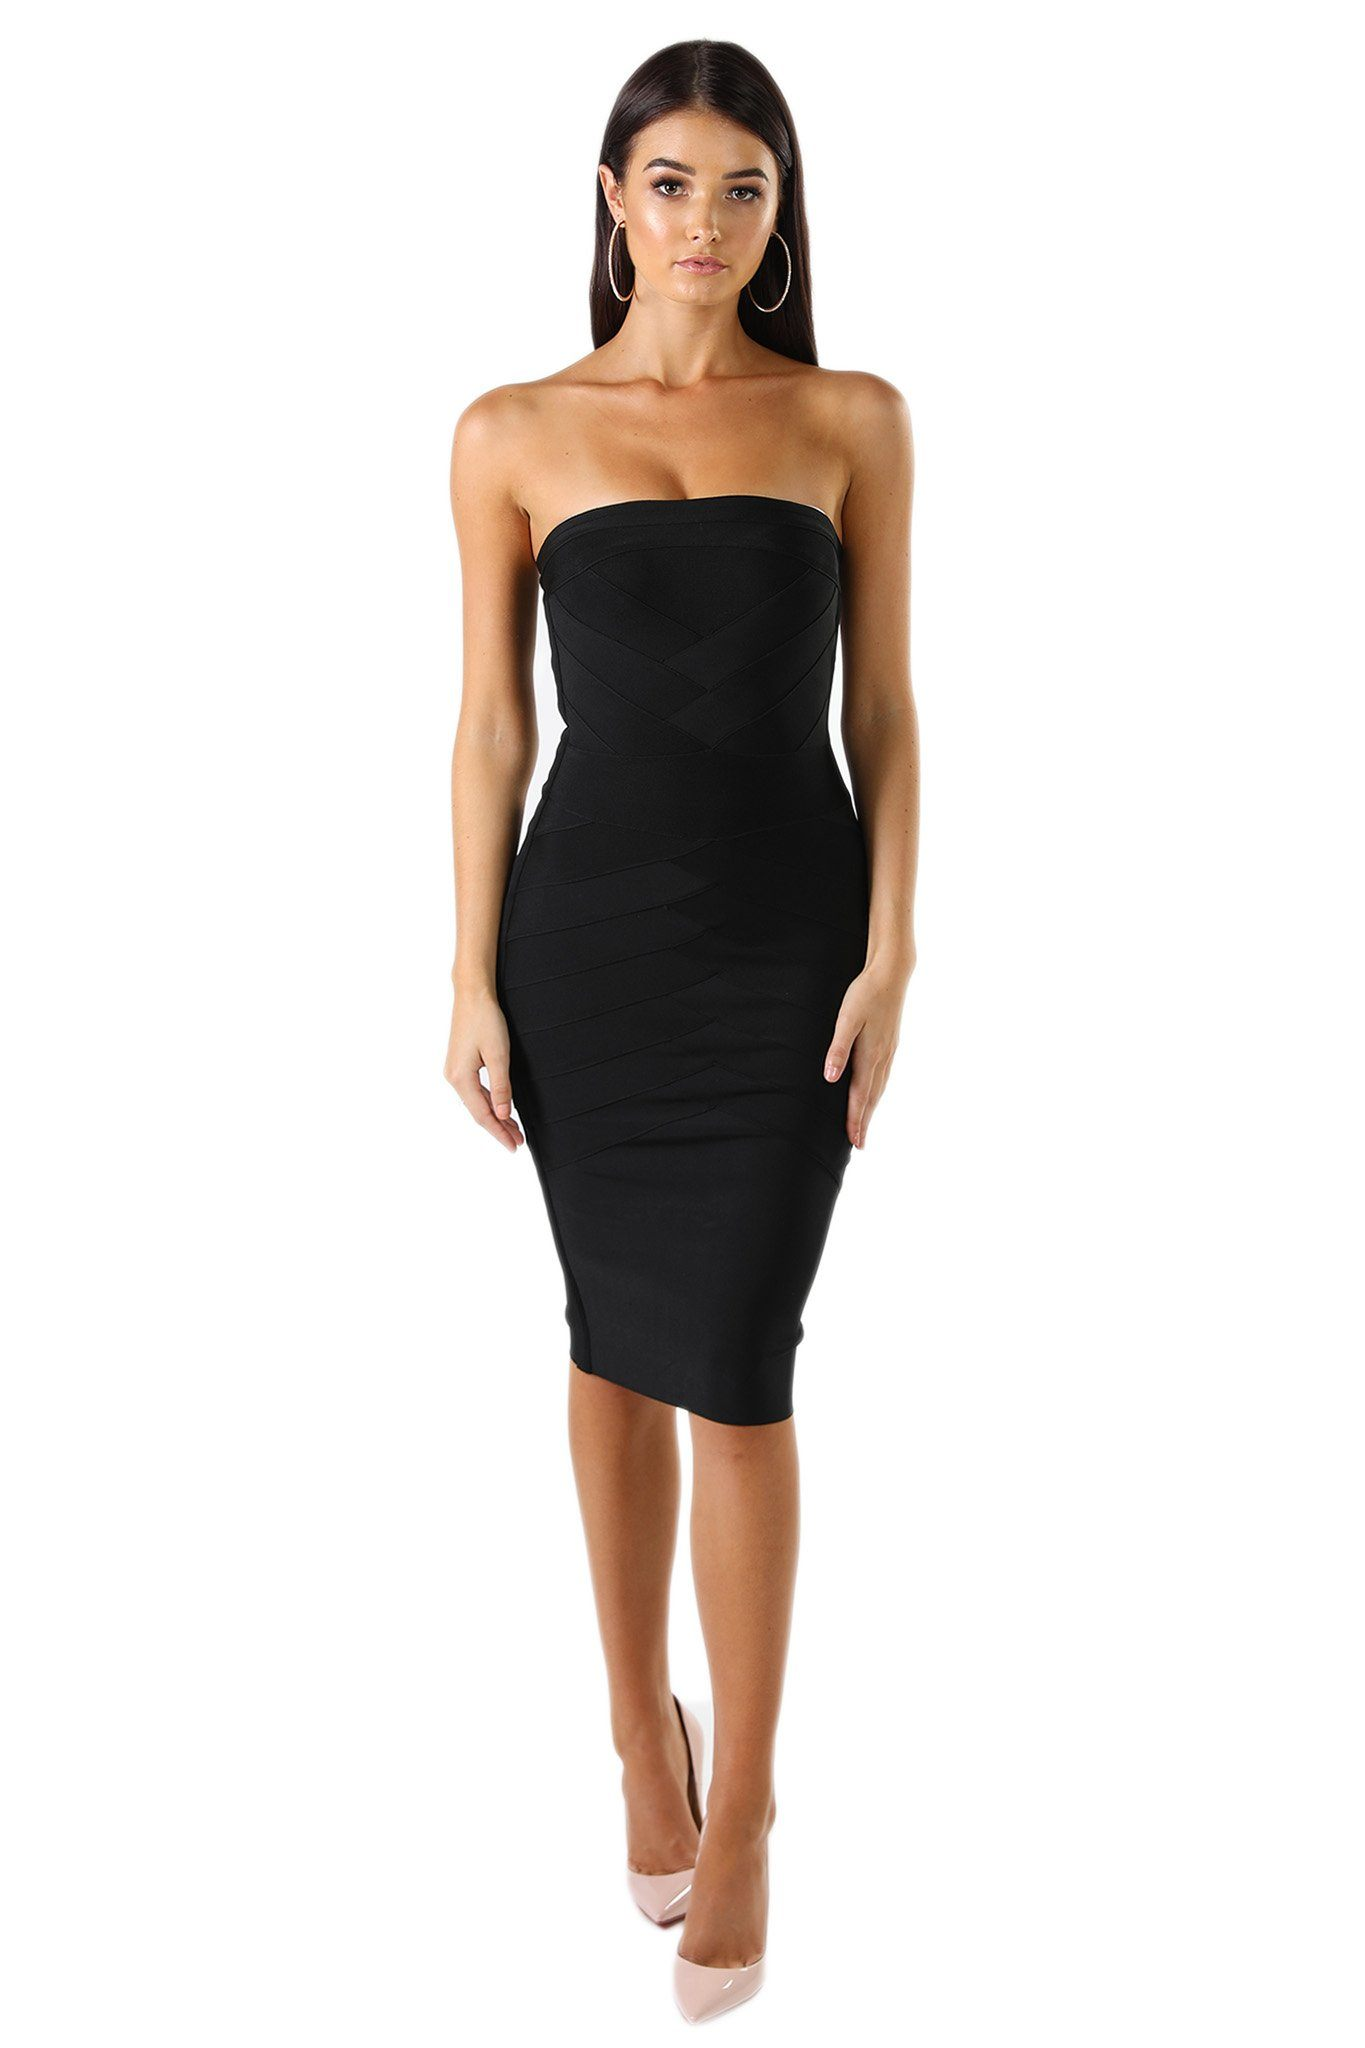 Black strapless knee length bandage dress straight neckline